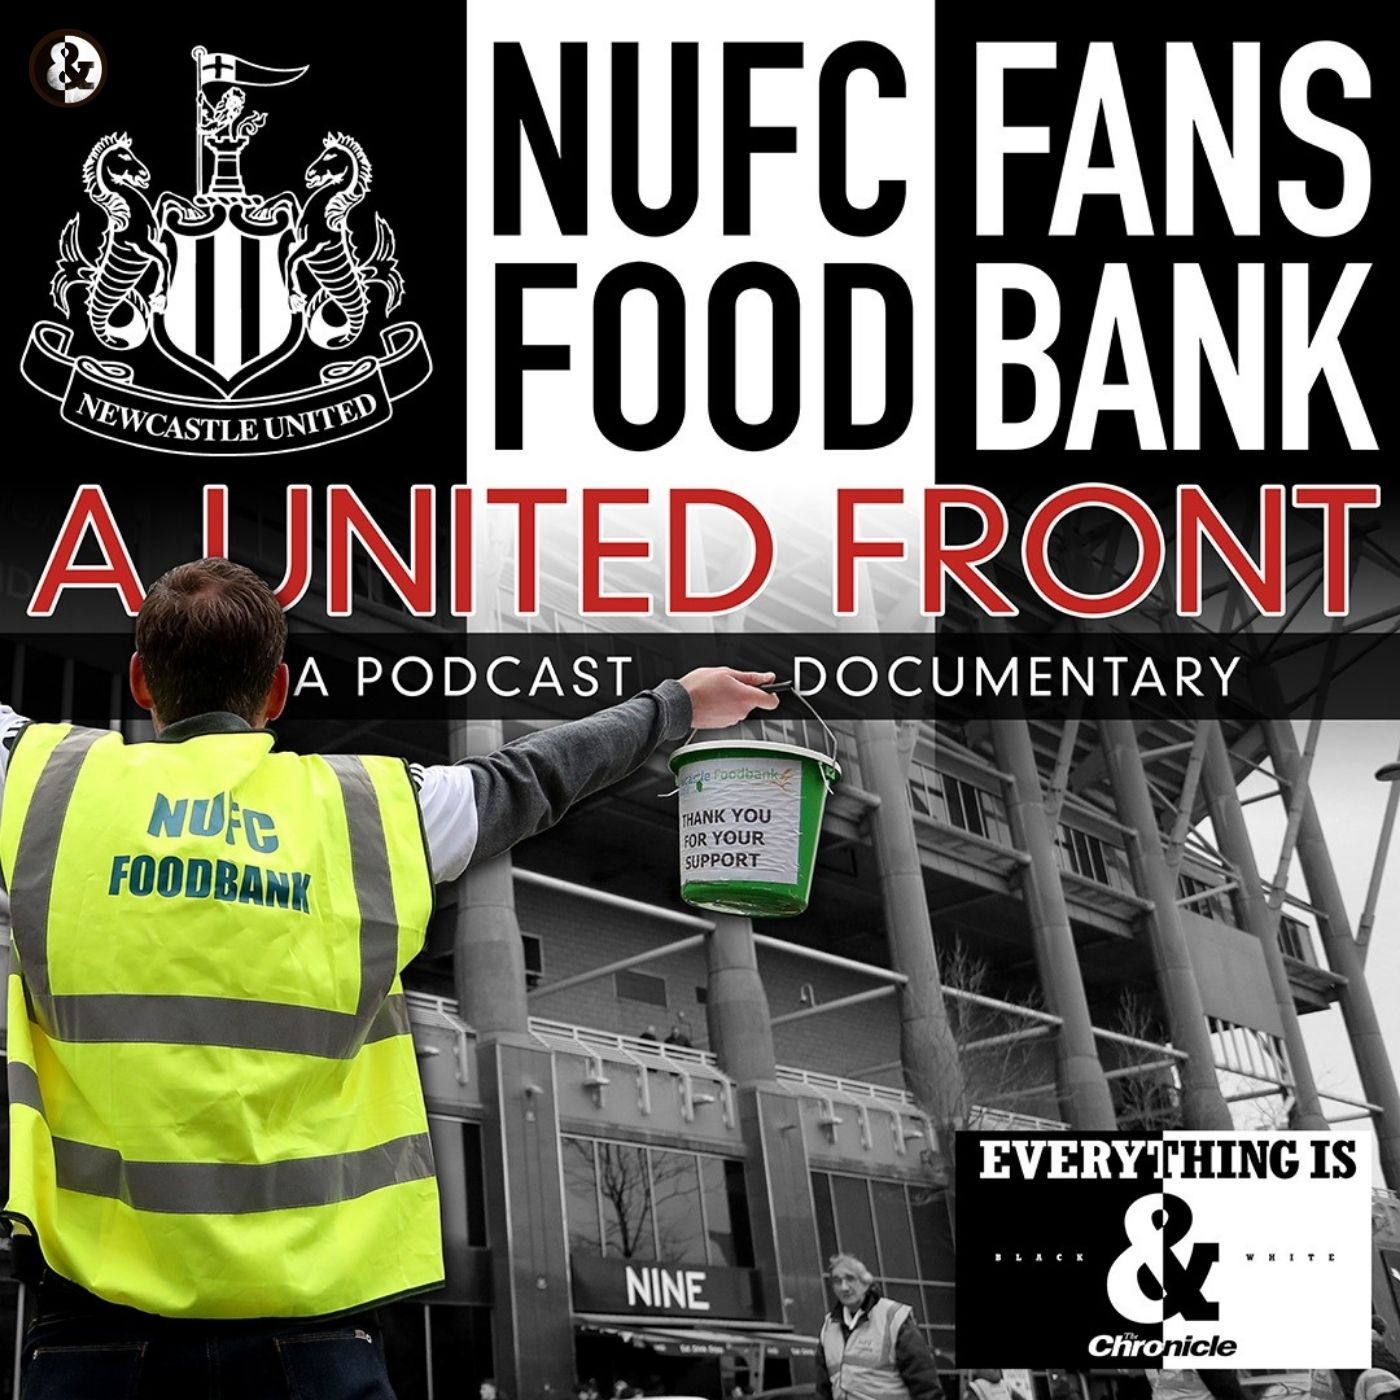 The NUFC Fans' Foodbank - A United Front